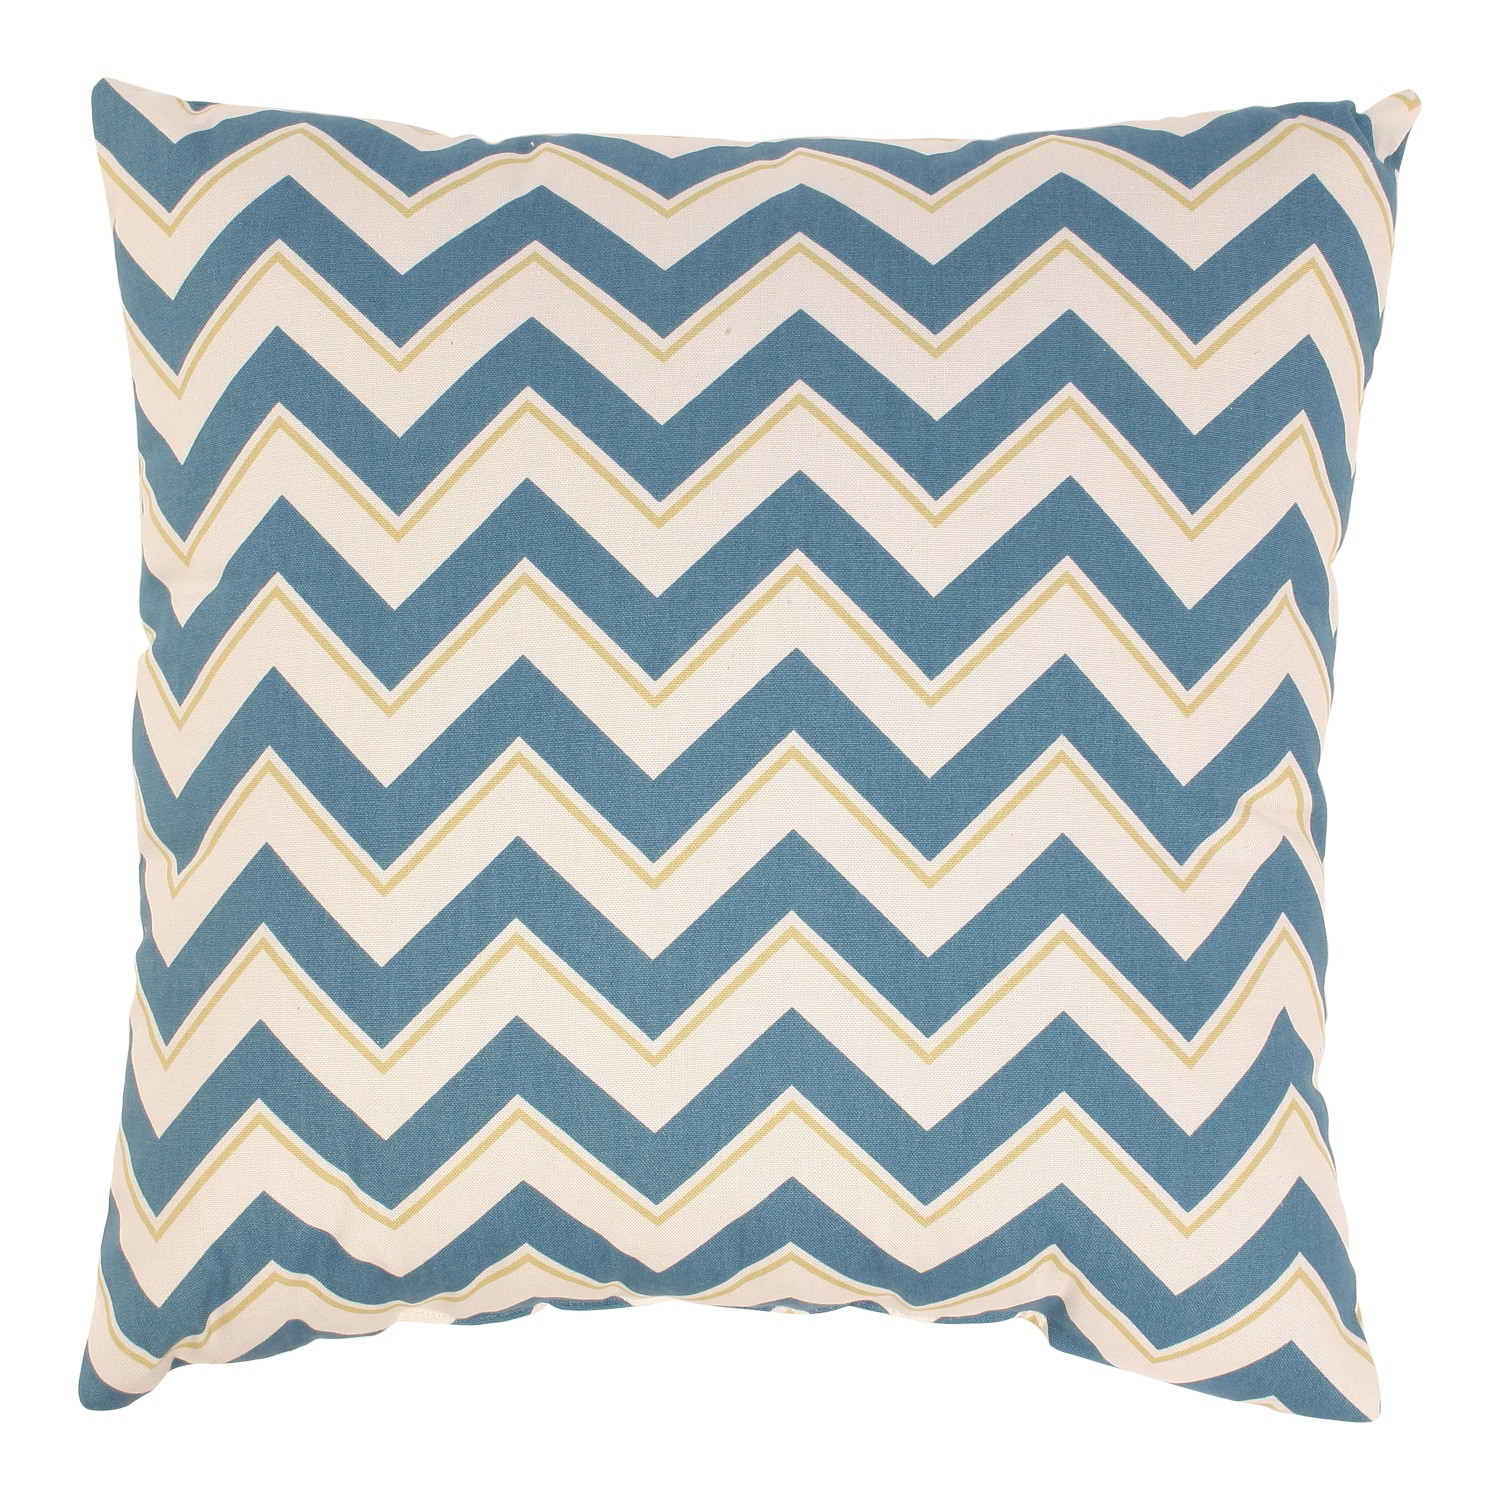 Chevron 18-inch Seaport Throw Pillow